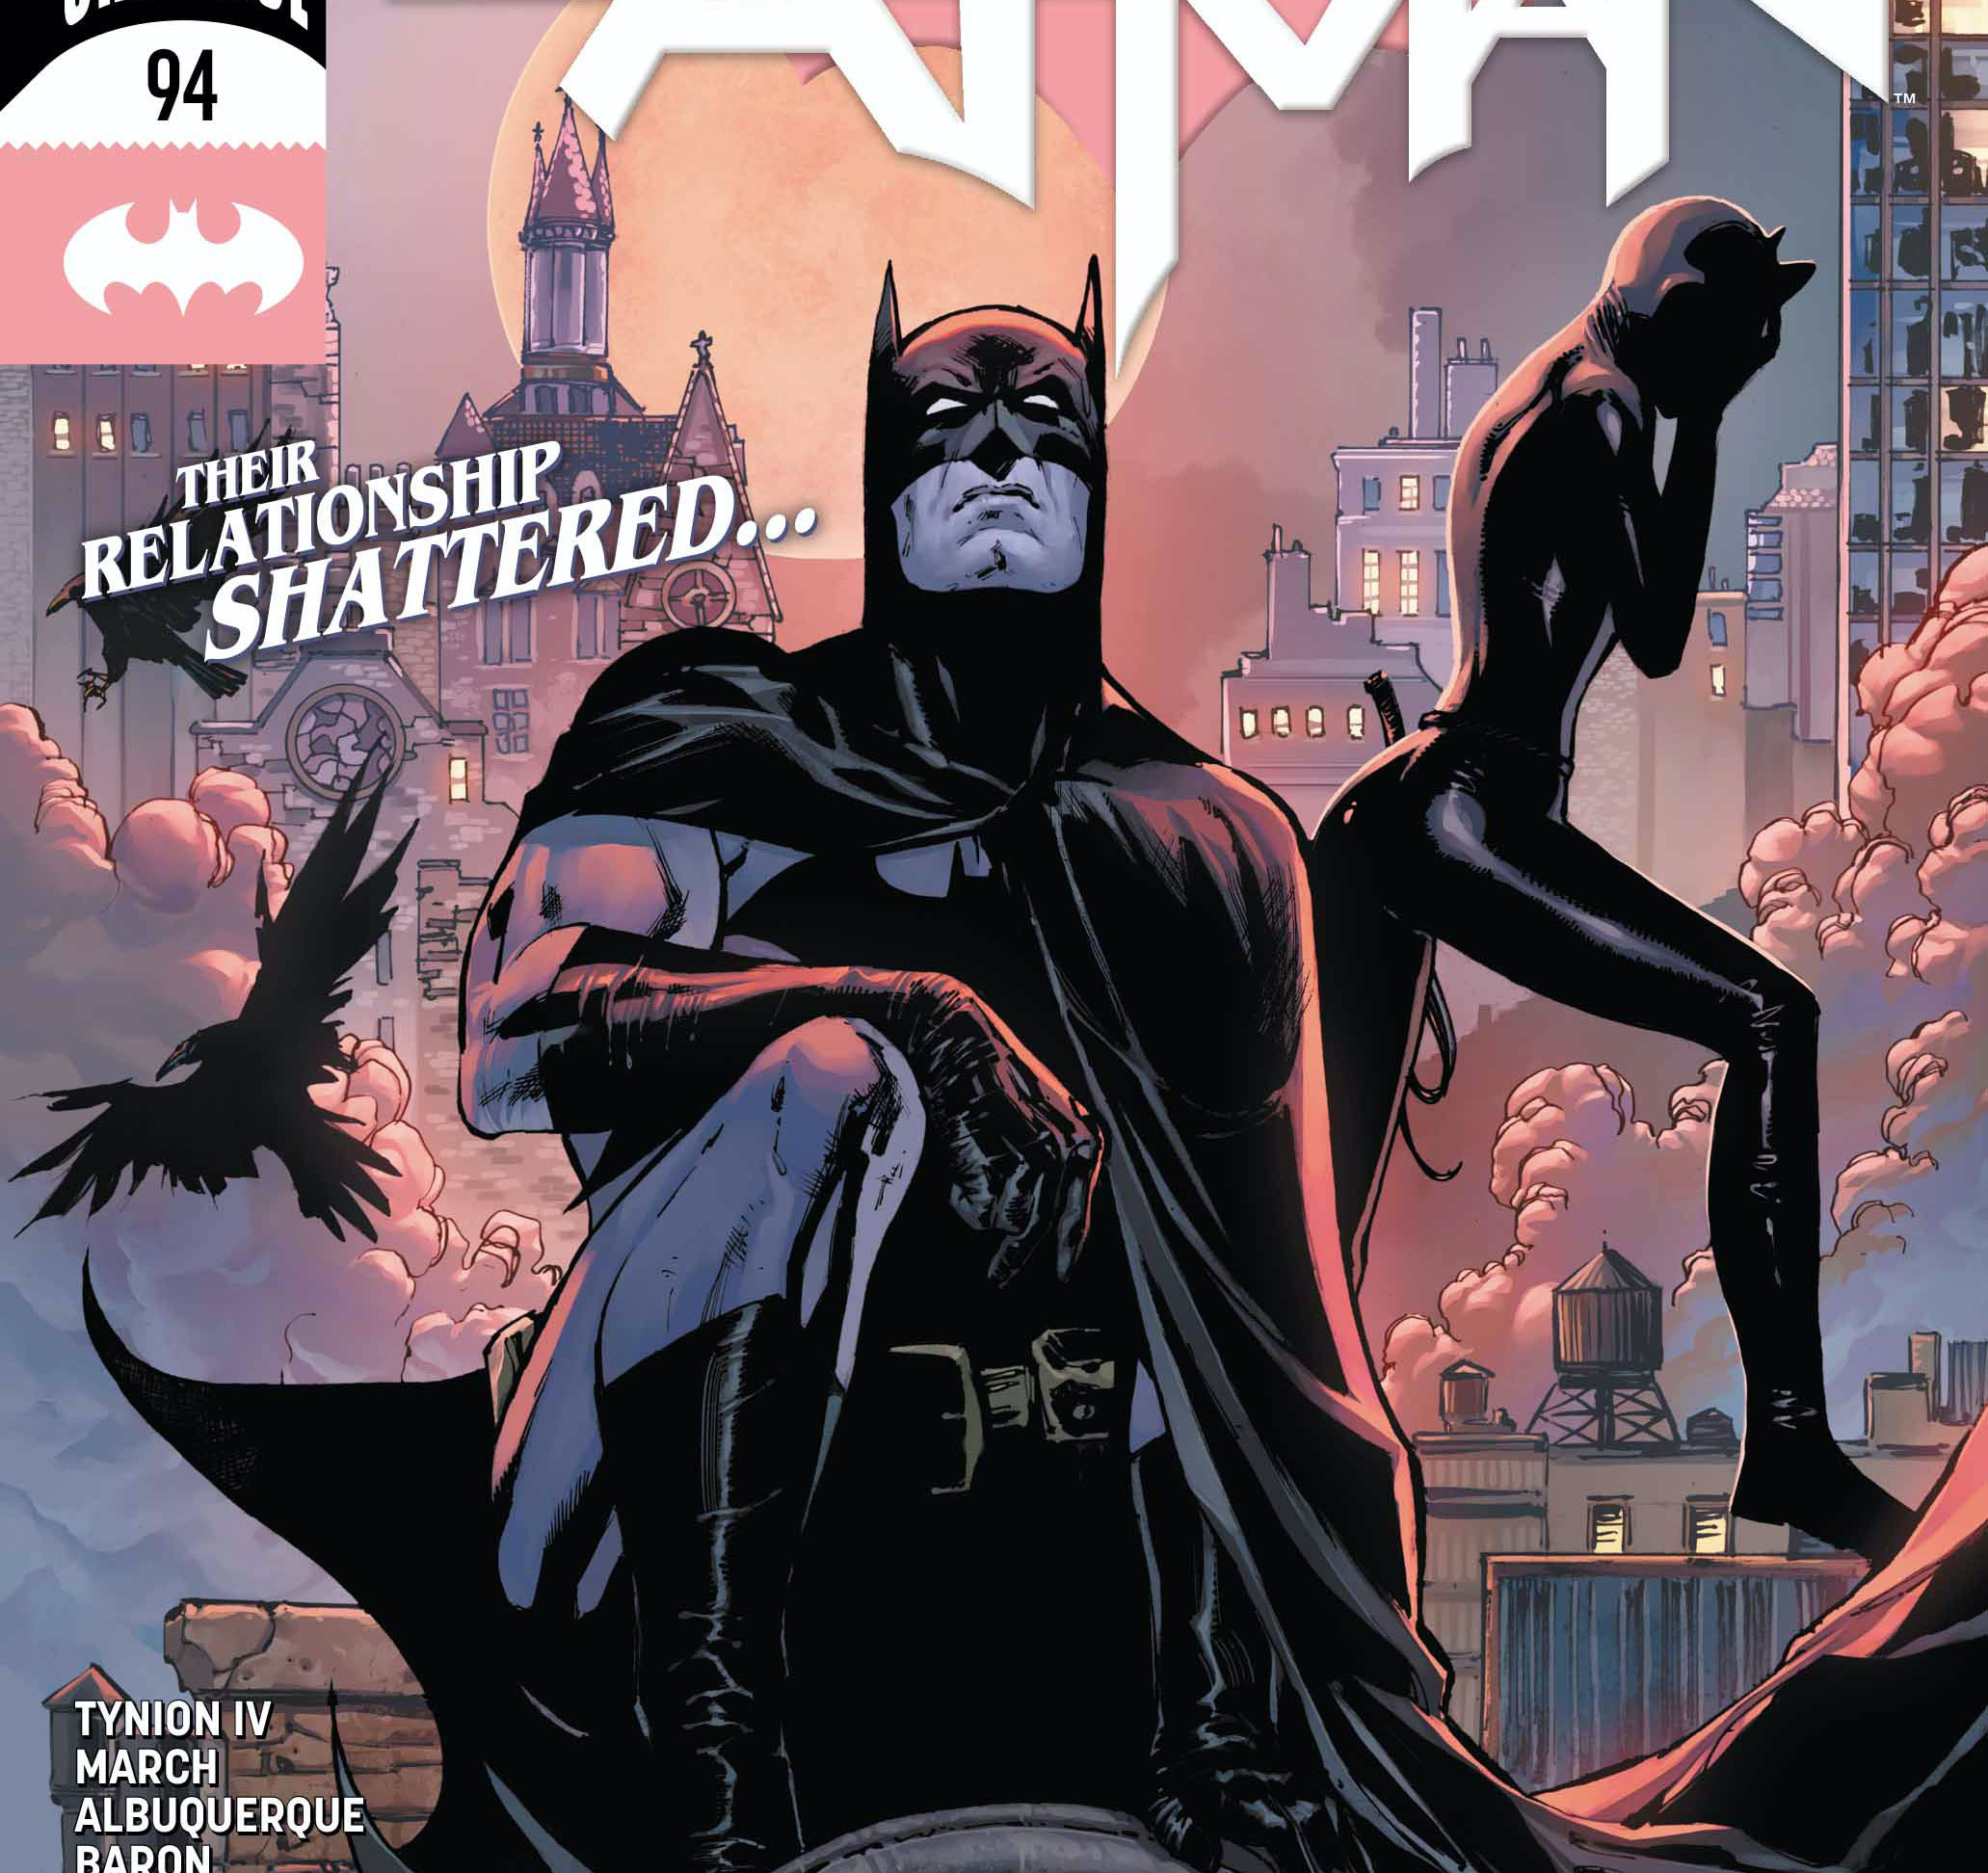 Batman is bleeding out, but can he save Catwoman, or is it too late?